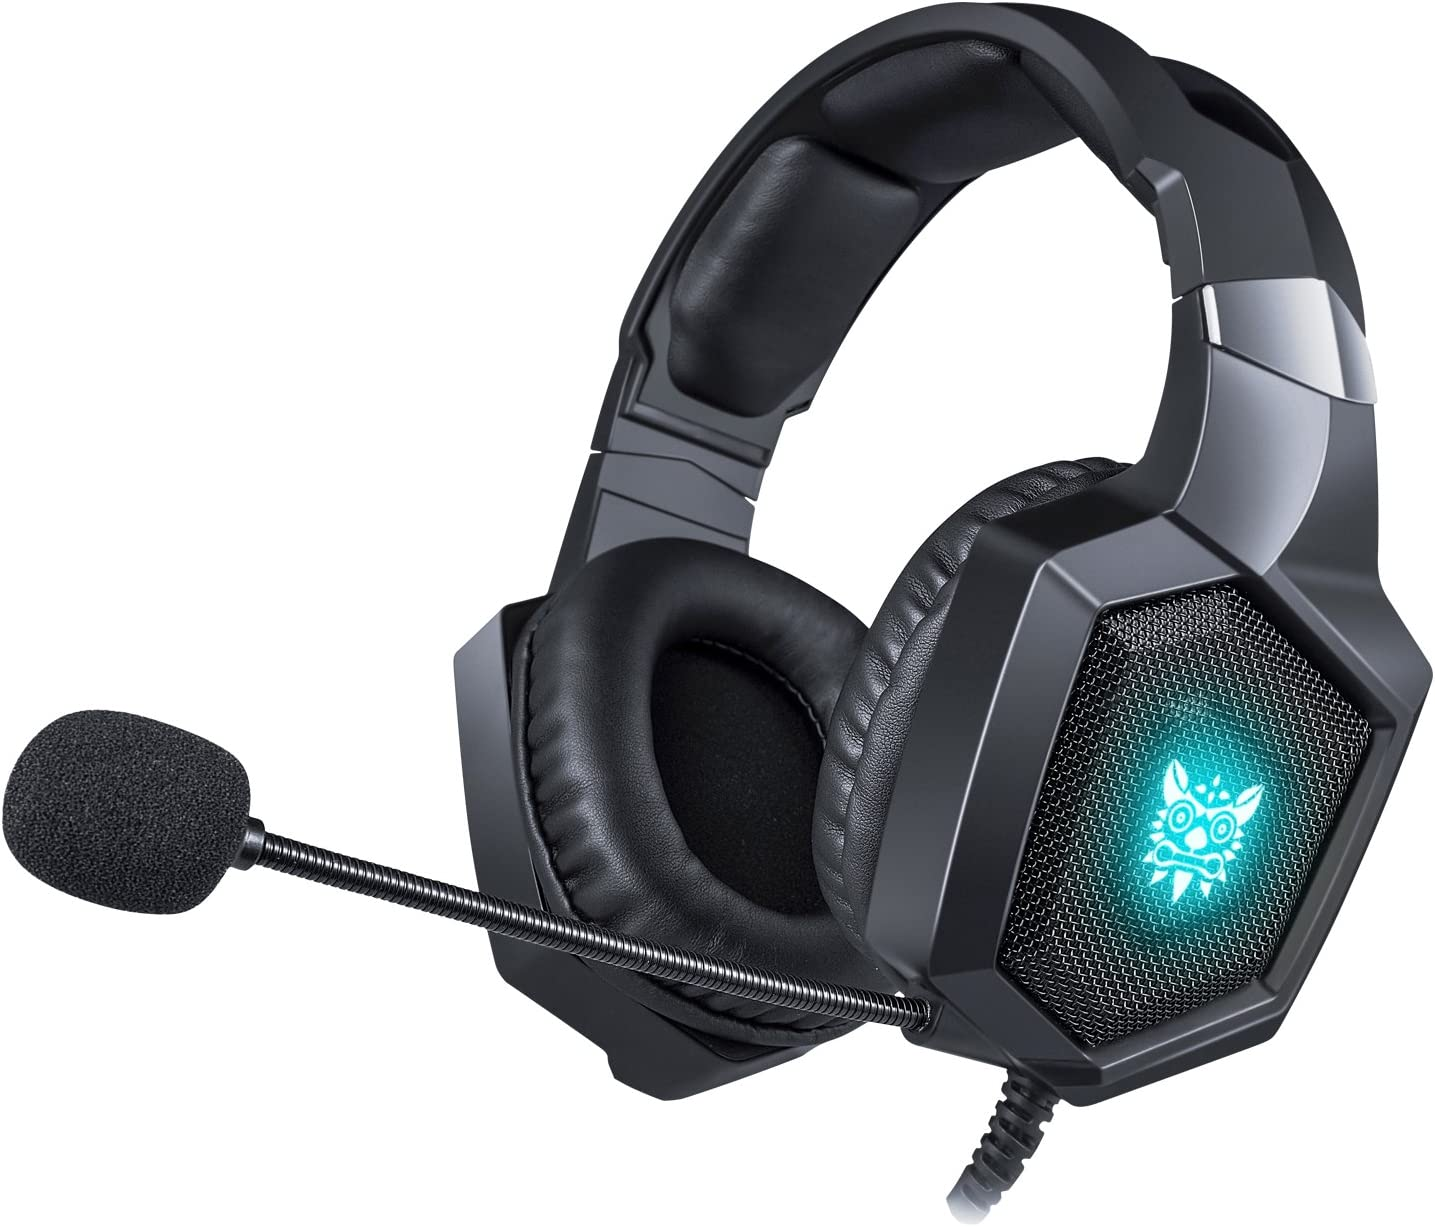 EasySMX Gaming Headset Xbox One Headset PS4 Headset, PC Headset with Noise Canceling Mic RGB LED Light, Gaming Headset for PS4, PC, PS3, Xbox One